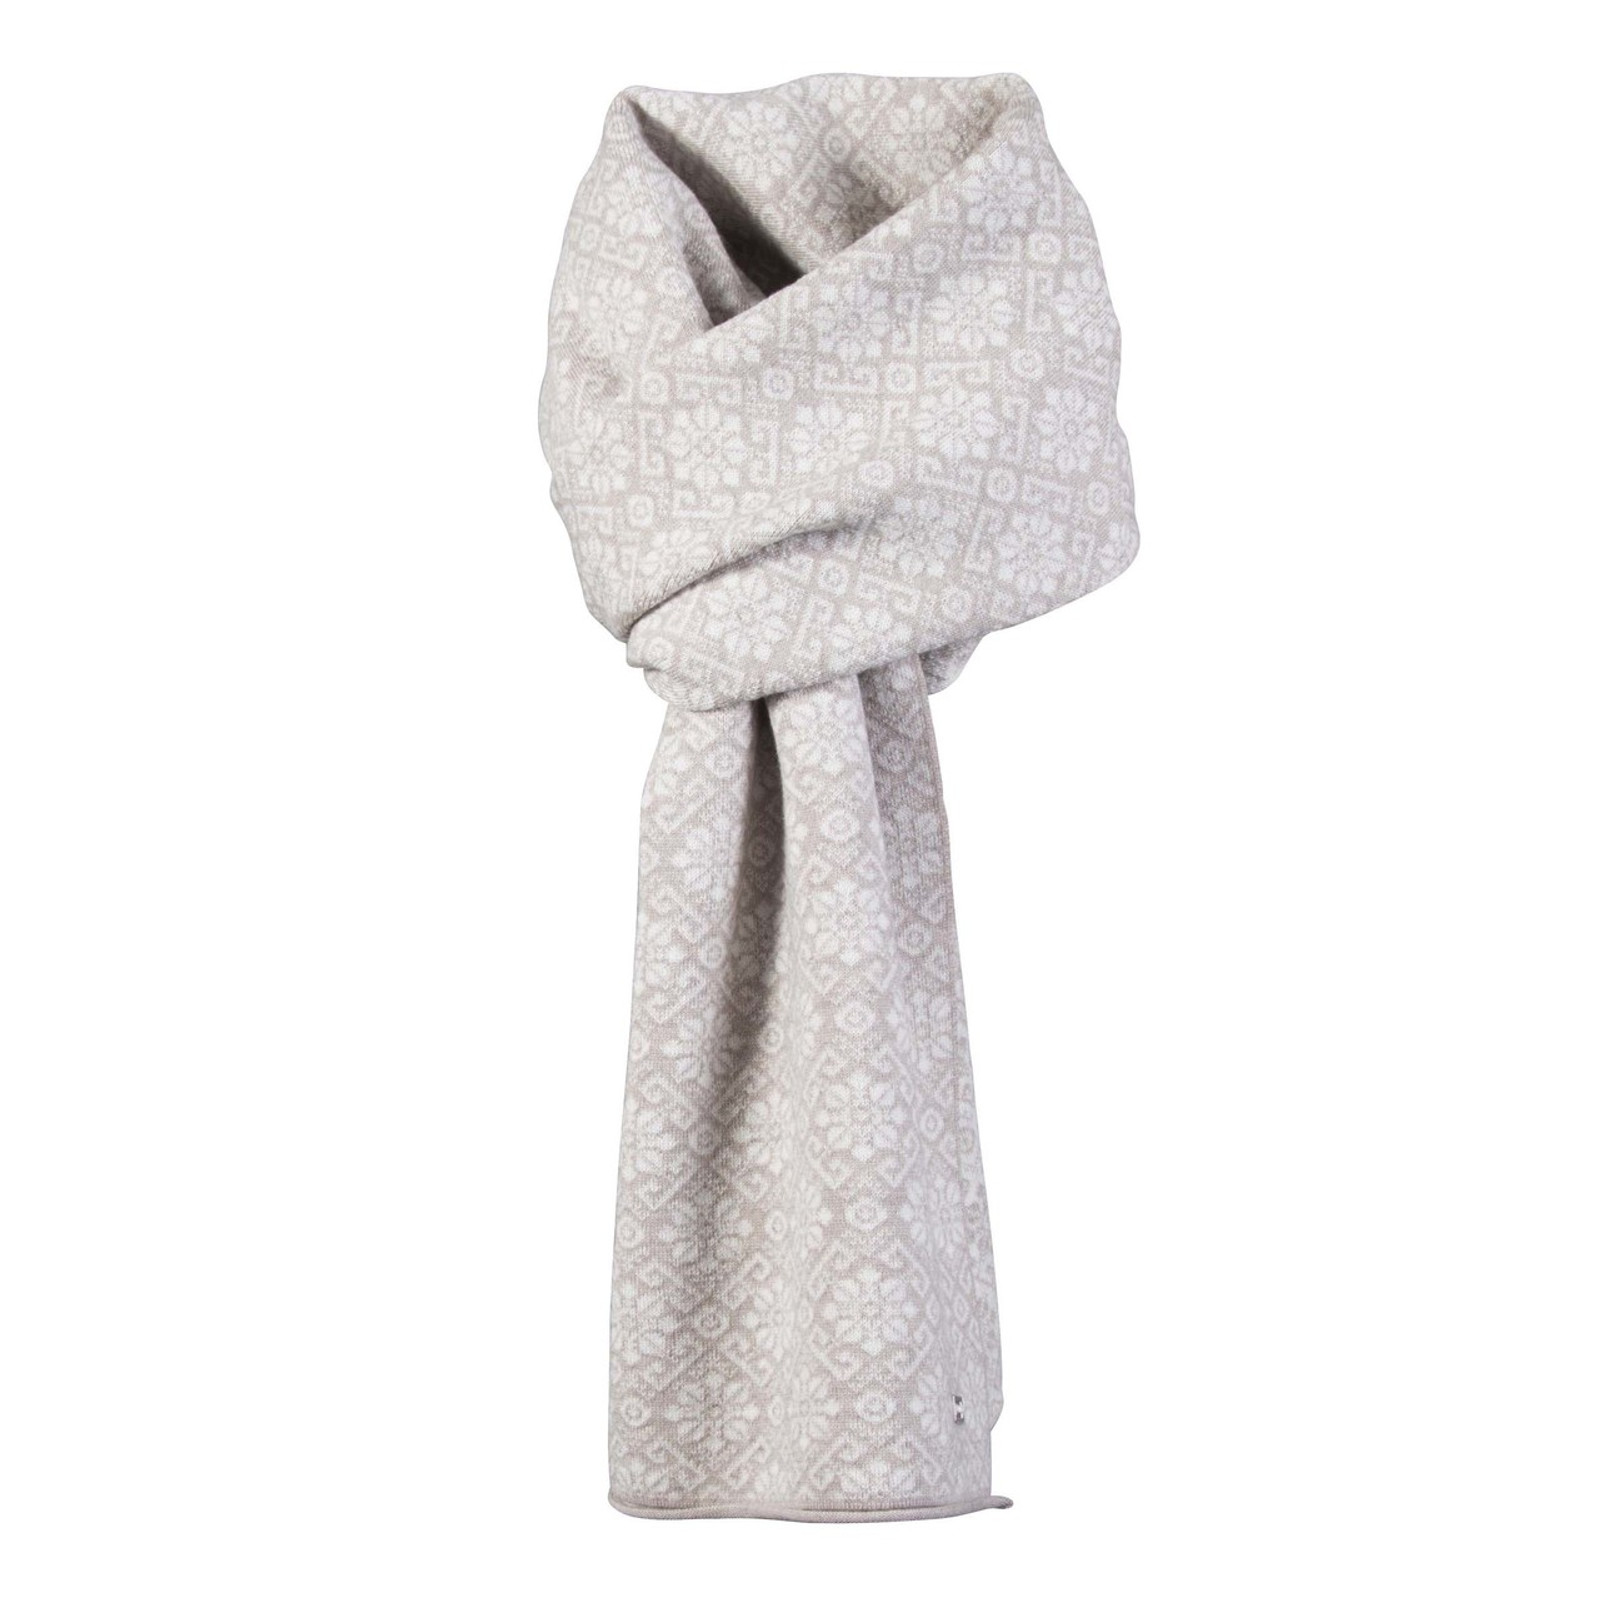 Dale of Norway, Sonja scarf in Sand Me/Off White Mel, 10961-P